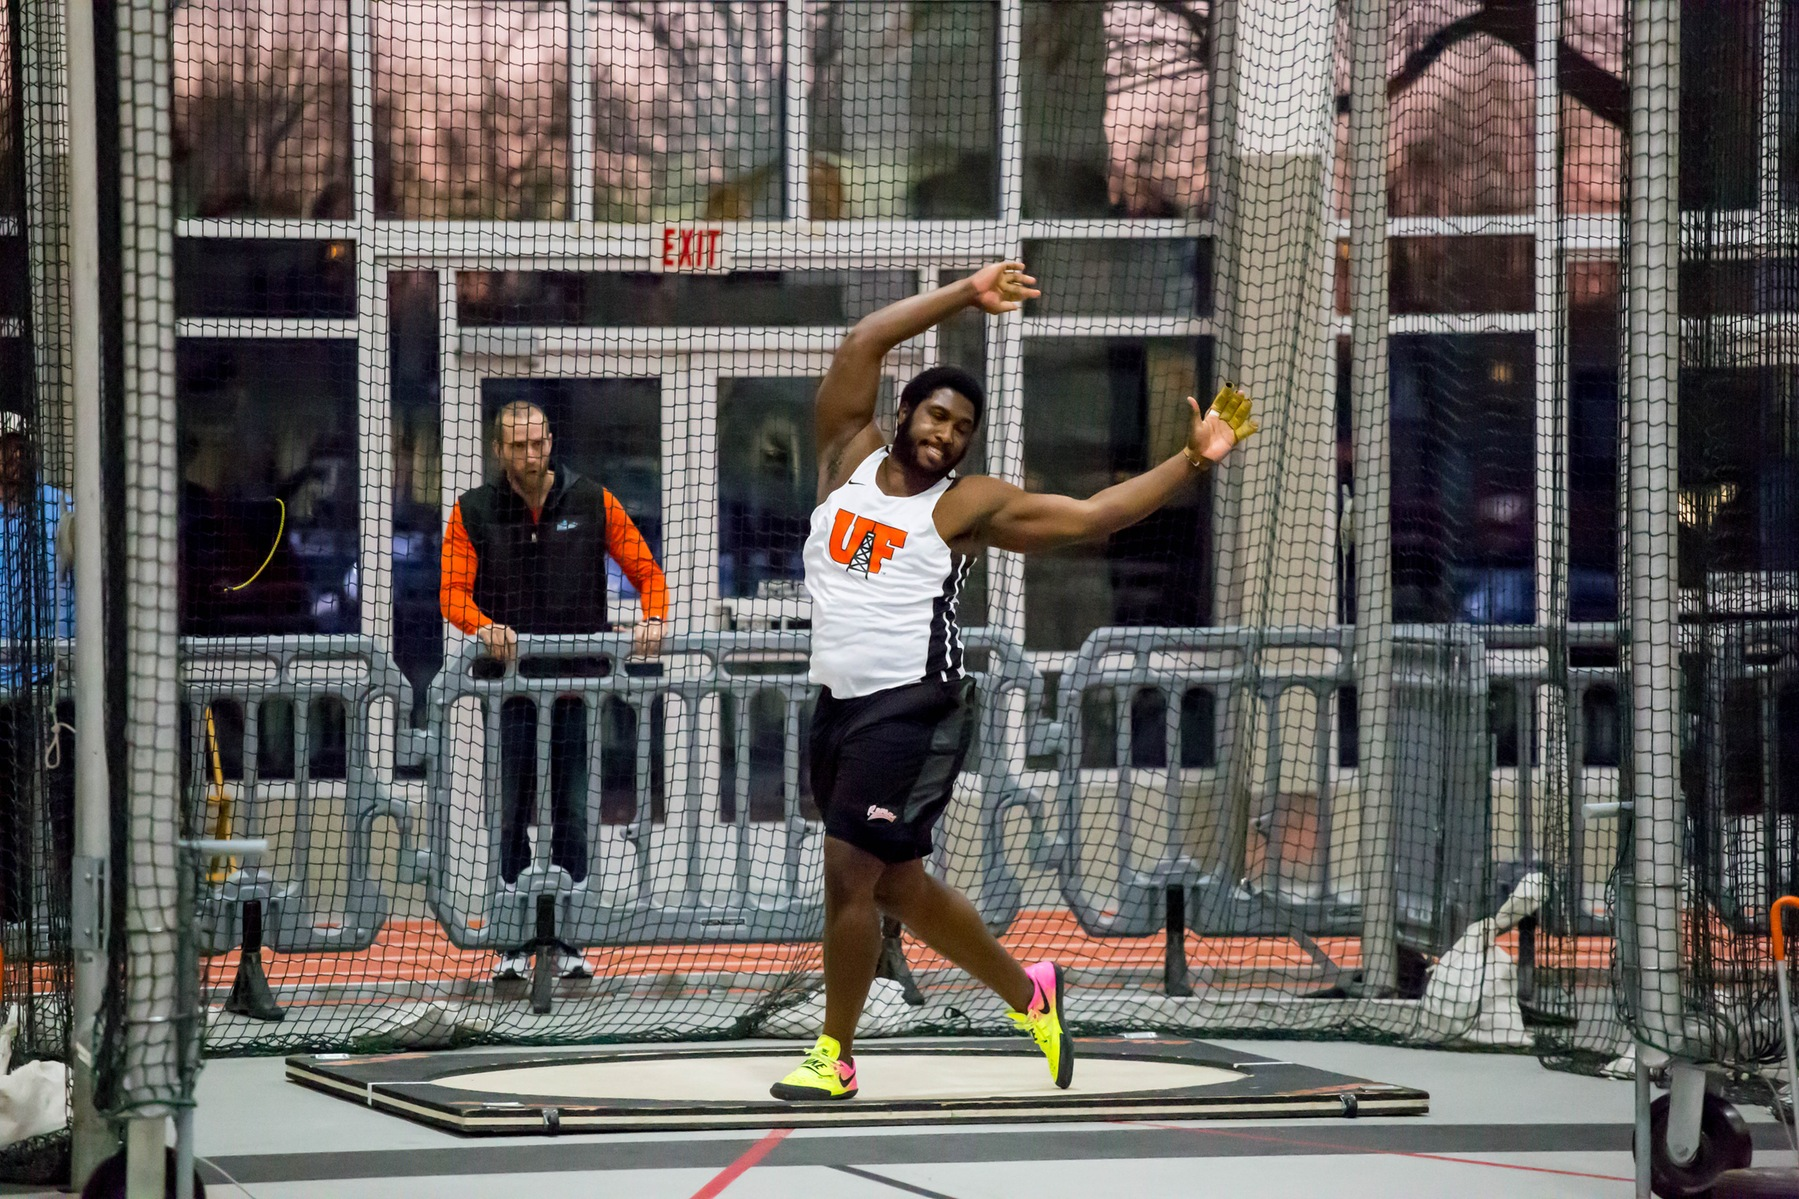 Oilers Complete First Day of Polar Bear Invitational